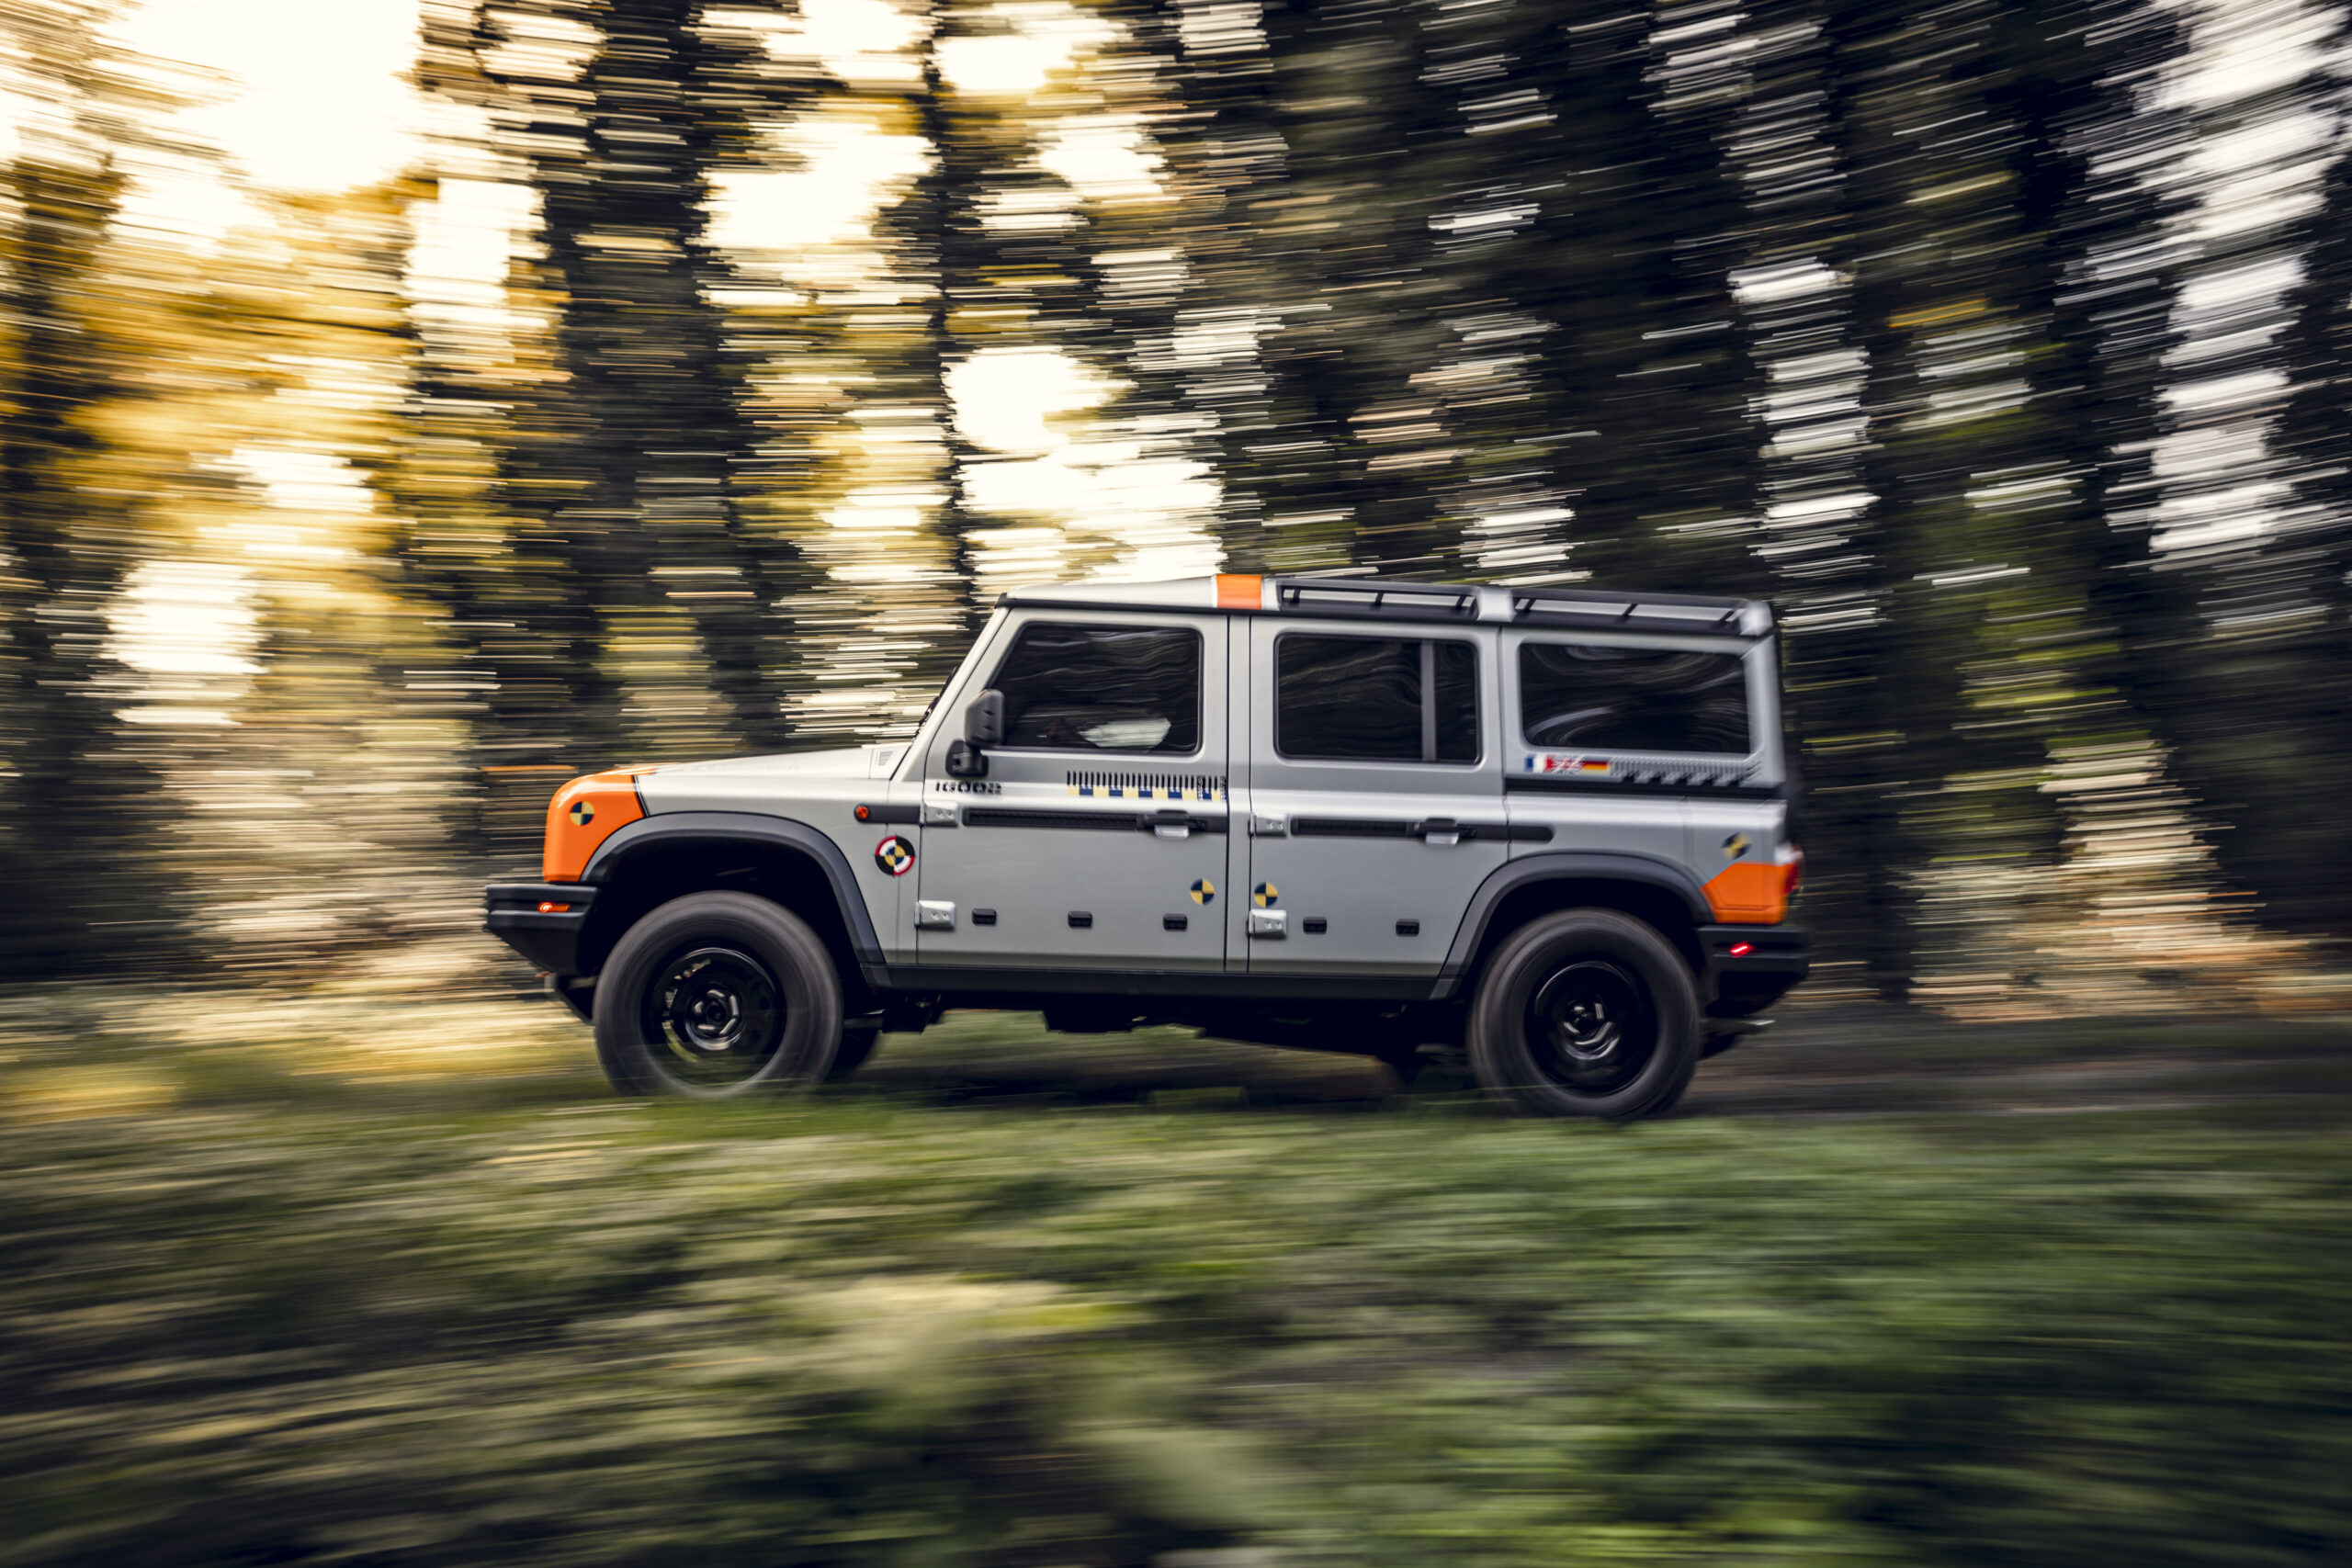 A silver INEOS Grenadier prototype drives quickly through forest roads for testing